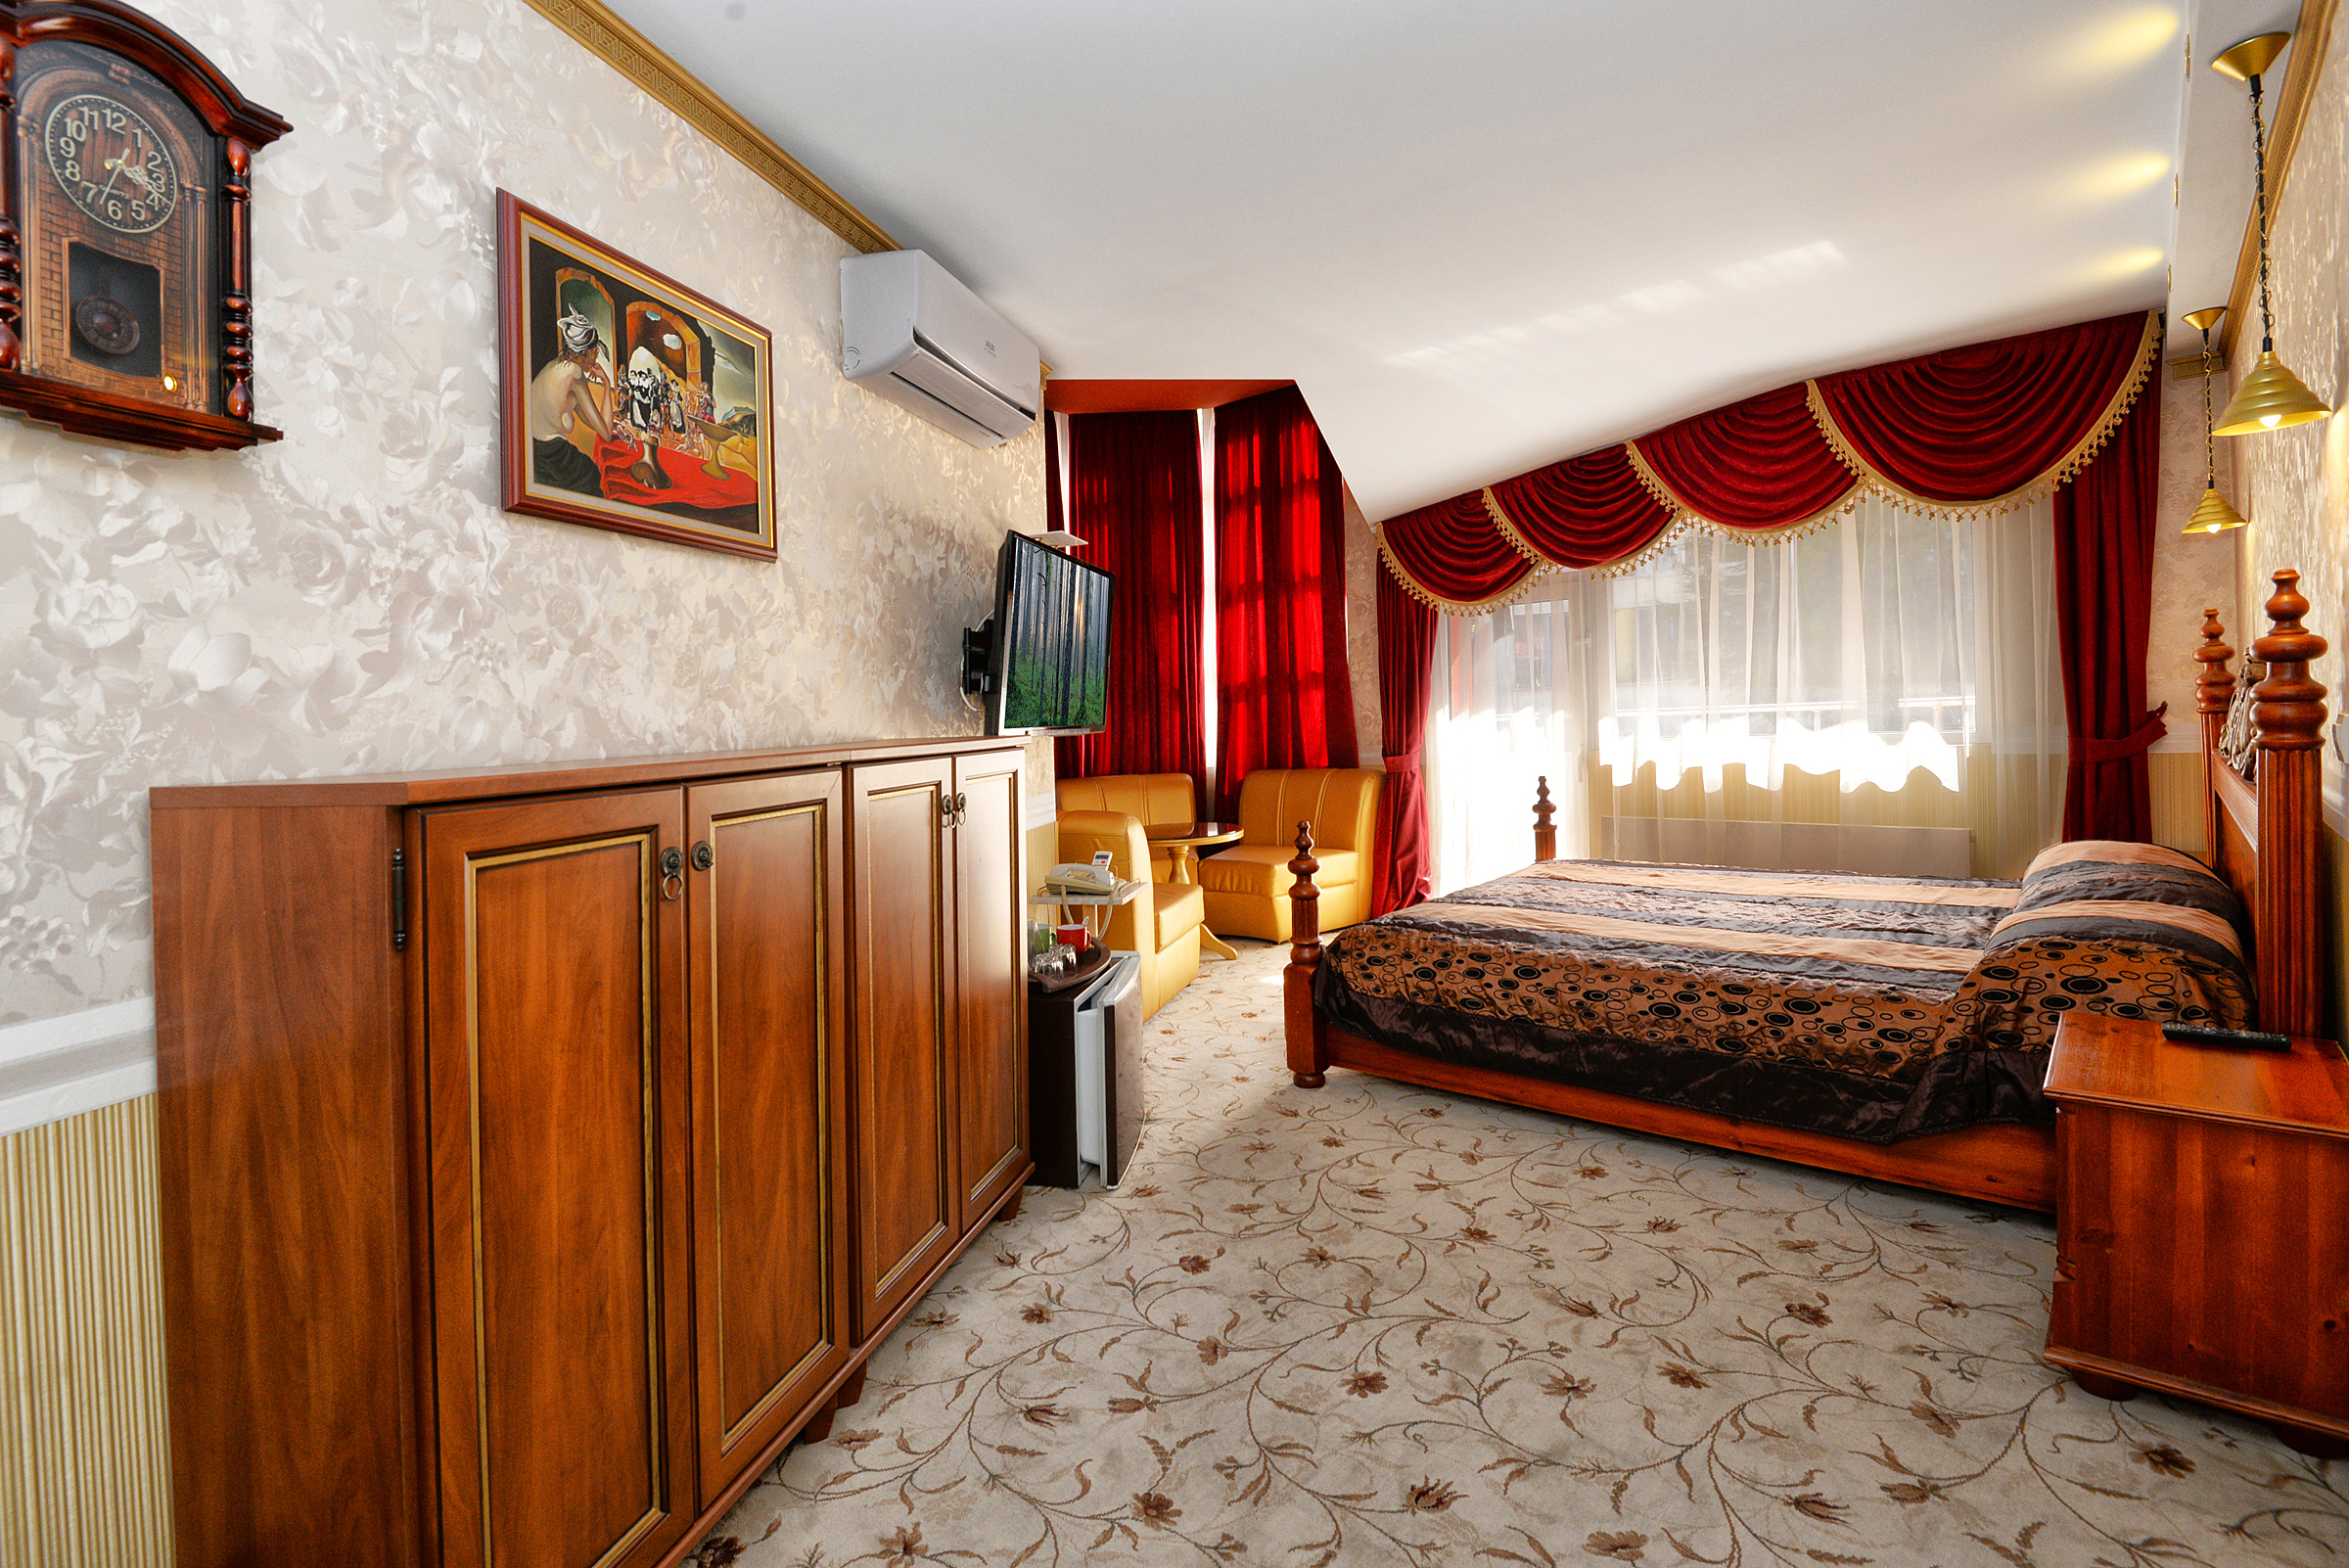 Saint Nikola Boutique Hotel